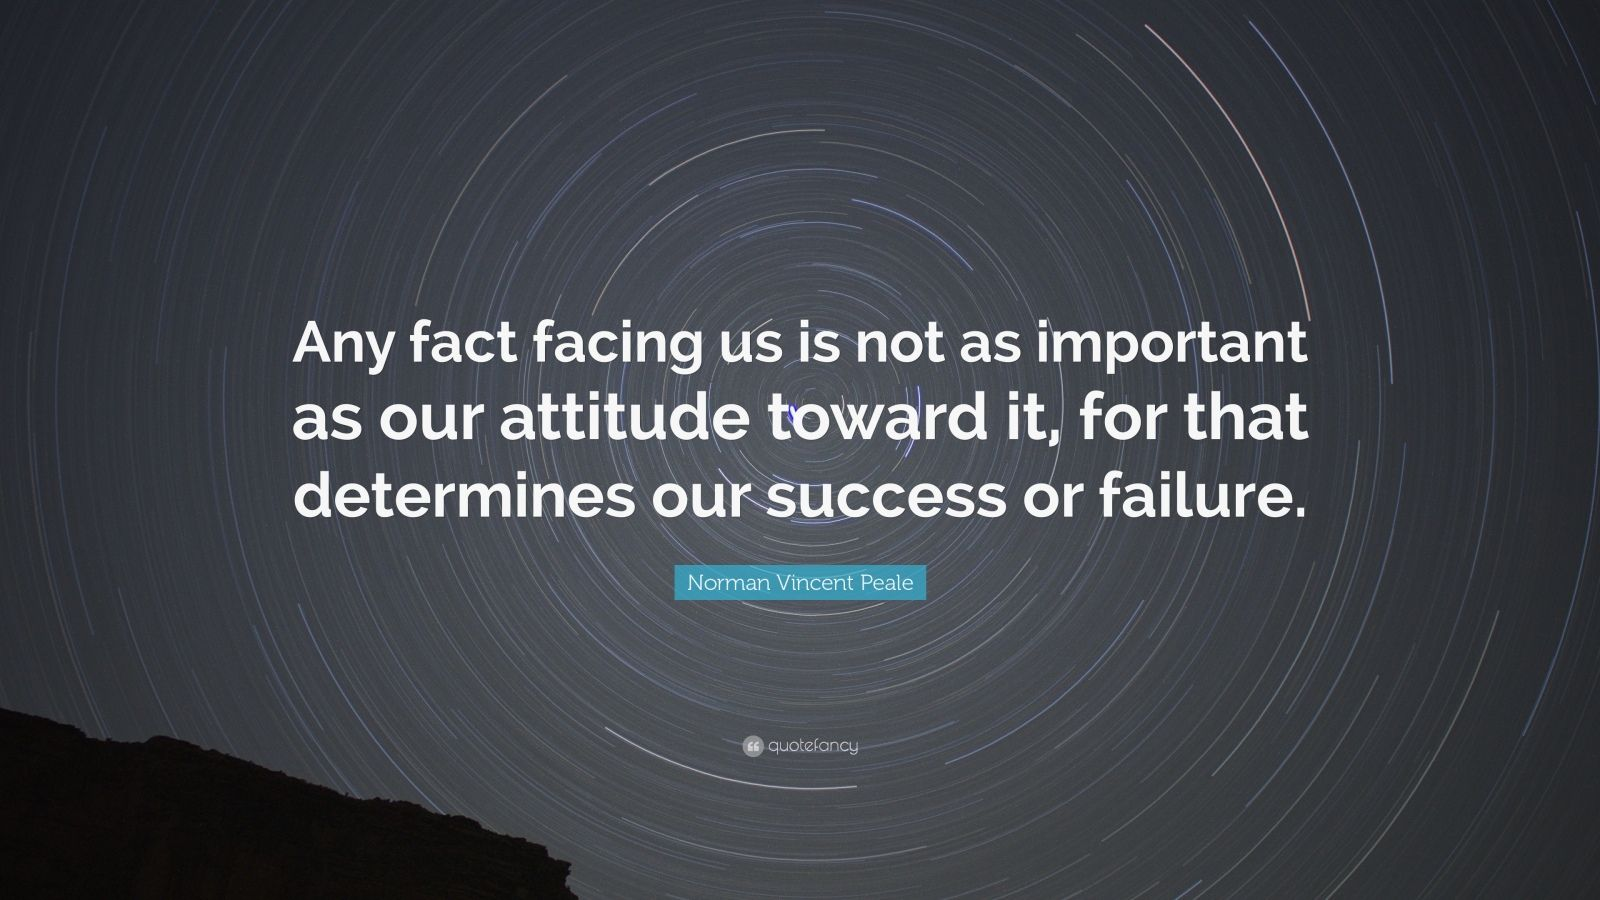 """Norman Vincent Peale Quote: """"Any fact facing us is not as important as our attitude toward it, for that determines our success or failure."""""""